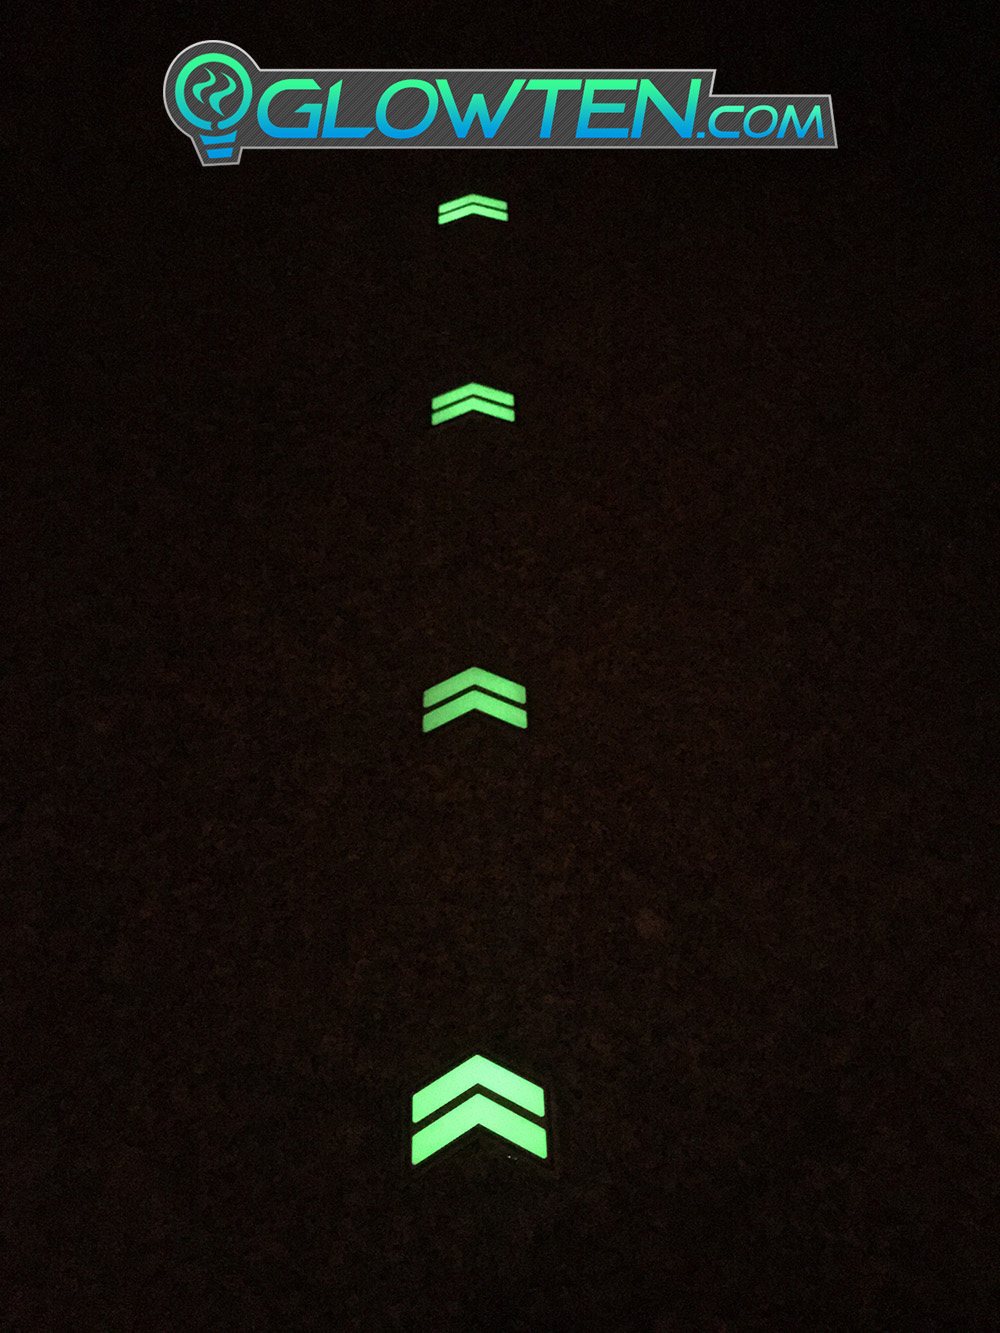 GLOWTEN.com - Cool Stainless Steel Photoluminescent Pigment Glowing Effect, Help First Responders Glow in the Dark Stairs Direction Guide Sign TWO ARROWS Pointer Photoluminescent Stainless Steel Green Glow picture photo cap preview pic image search 3